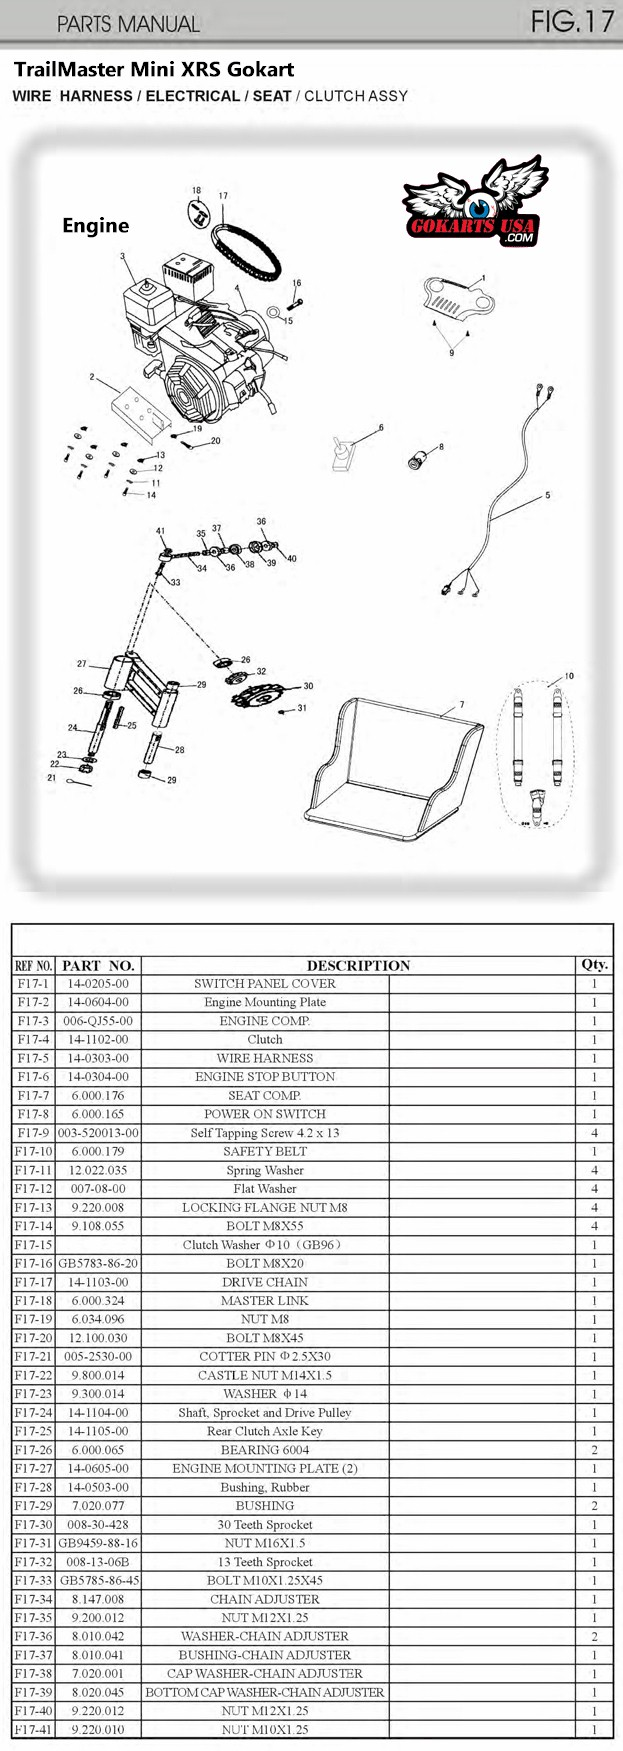 Wiring Diagram For Gy6 150cc Scooter in addition Gy6 Buggy Wiring likewise TrailMaster Mini XRX XRS Gokart 163cc Engine Crankshaft Assembly likewise Engine Parts TrailMaster 150 XRS XRX Buggy Gokart Head 3 besides TrailMaster Mini XRX XRS Gokart Parts Engine Wiring Clutch 4. on trailmaster go kart engine diagram